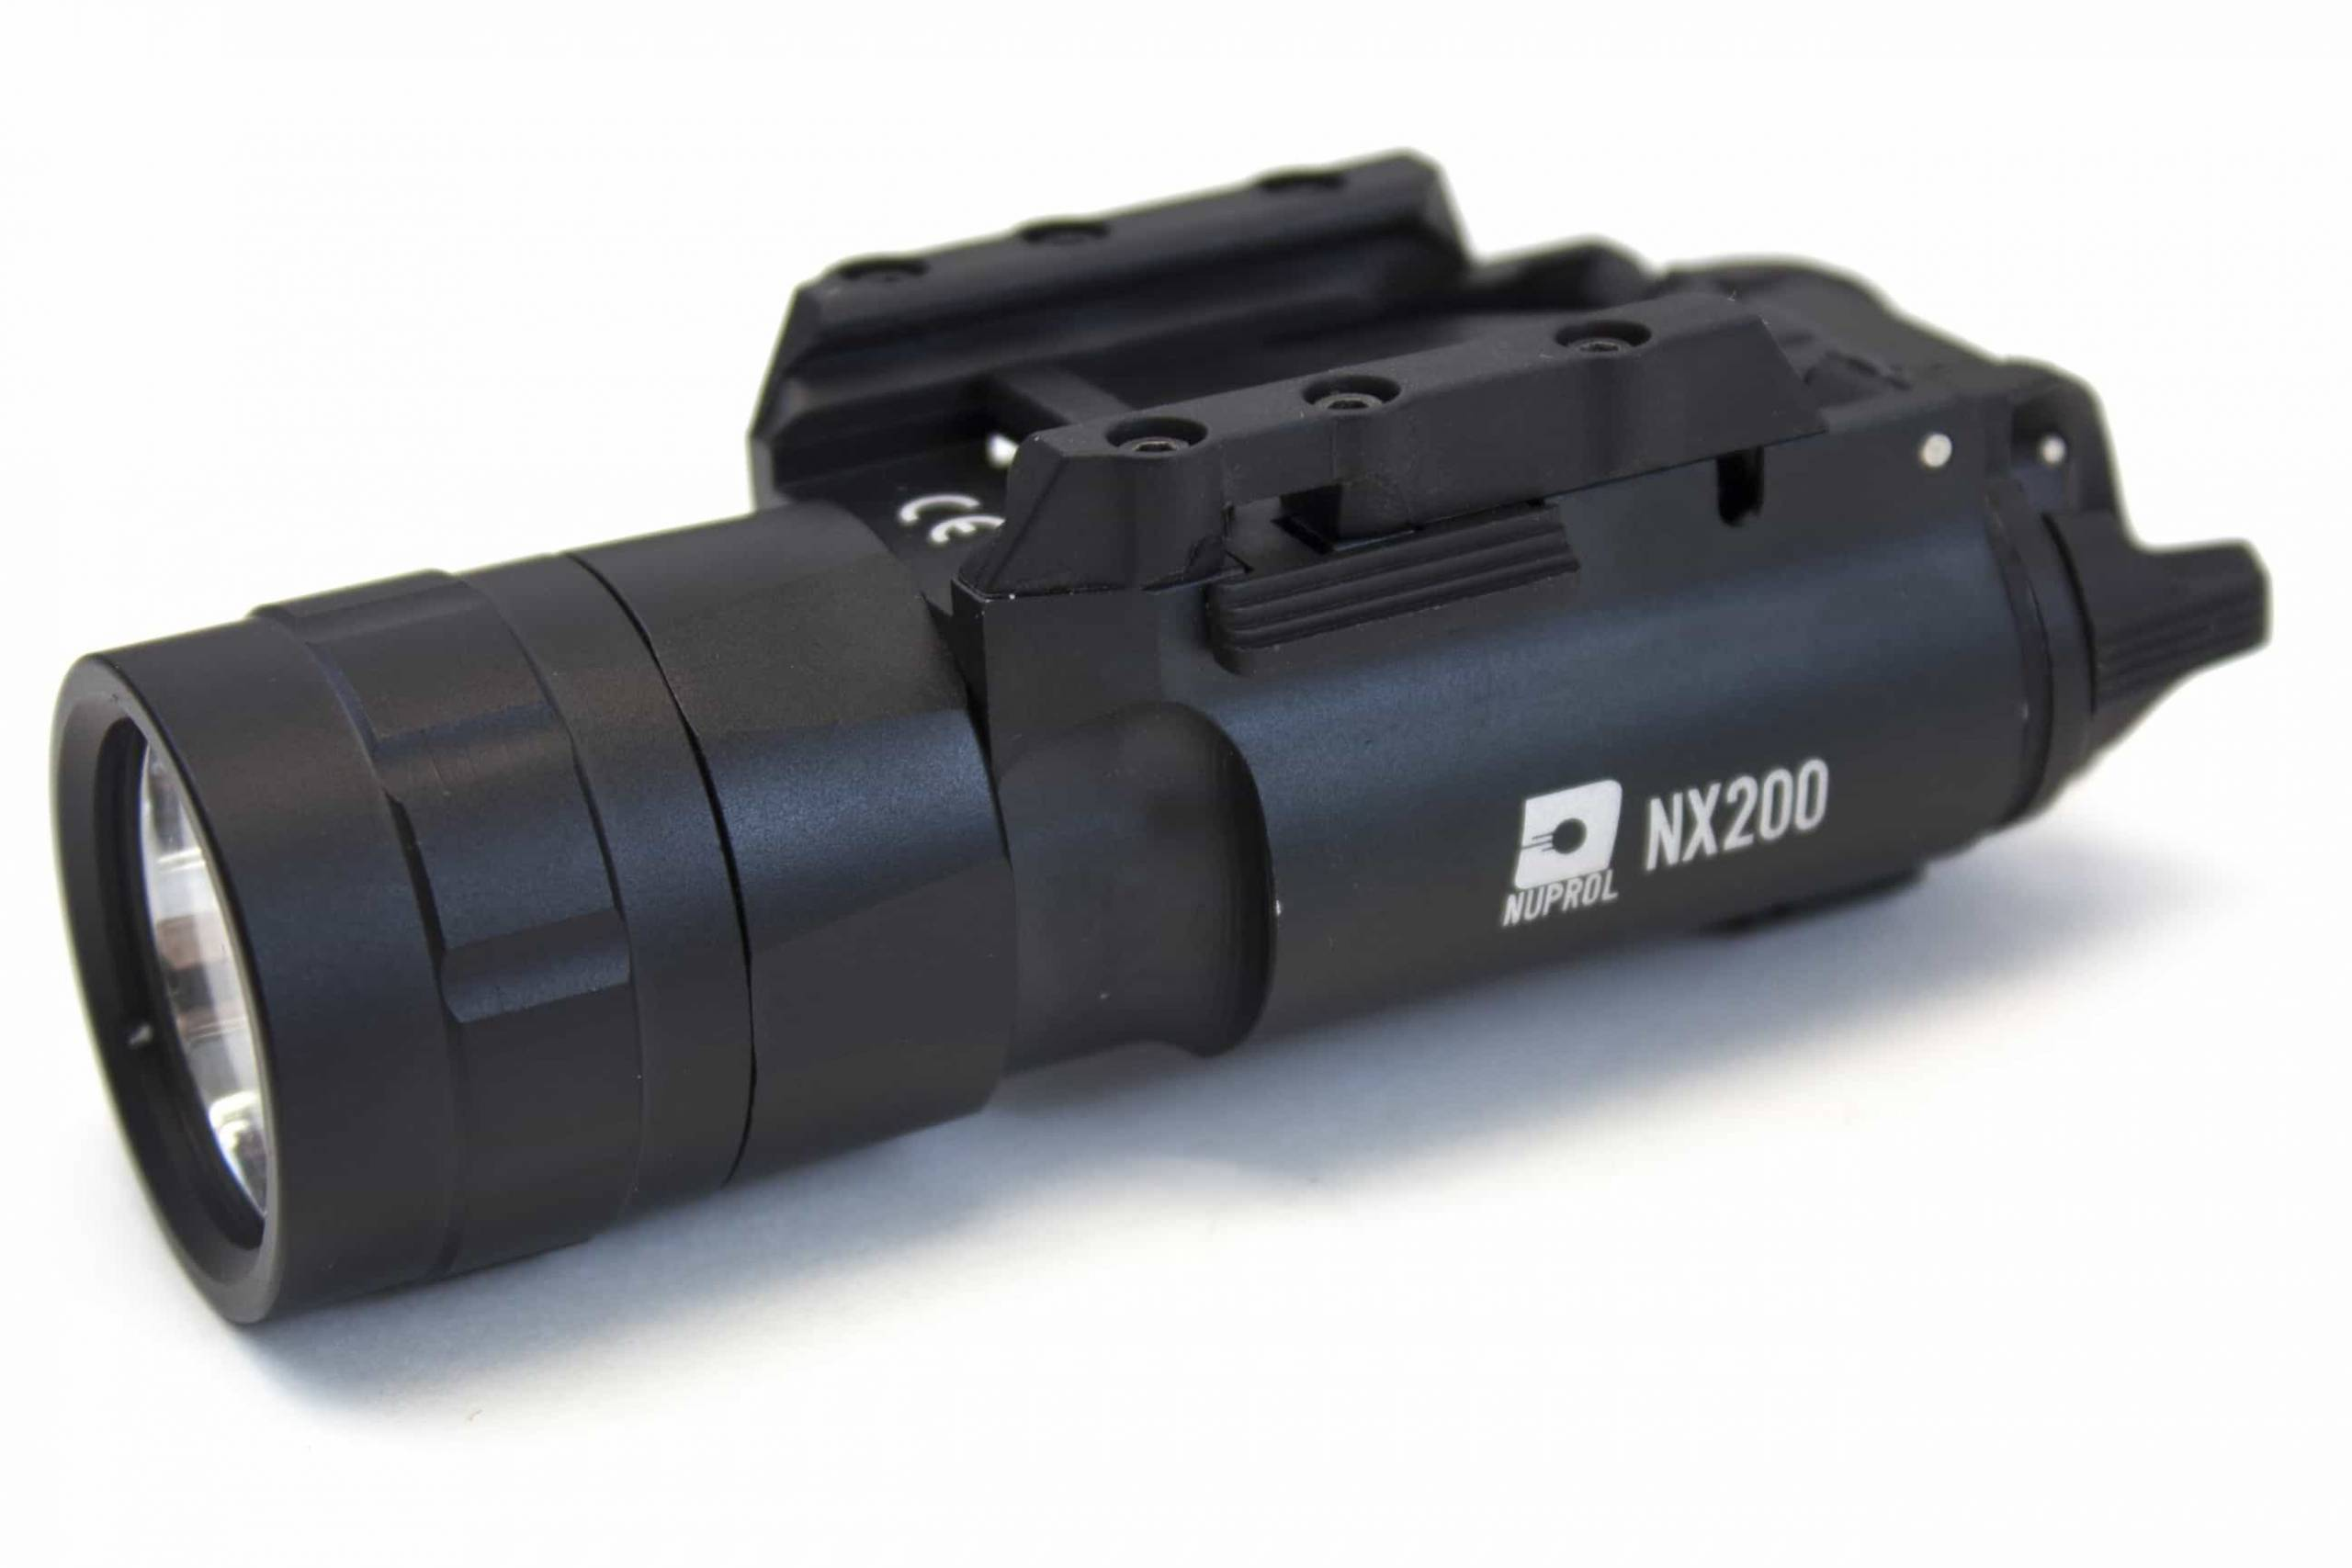 Nuprol NX200 Pistol Torch product image